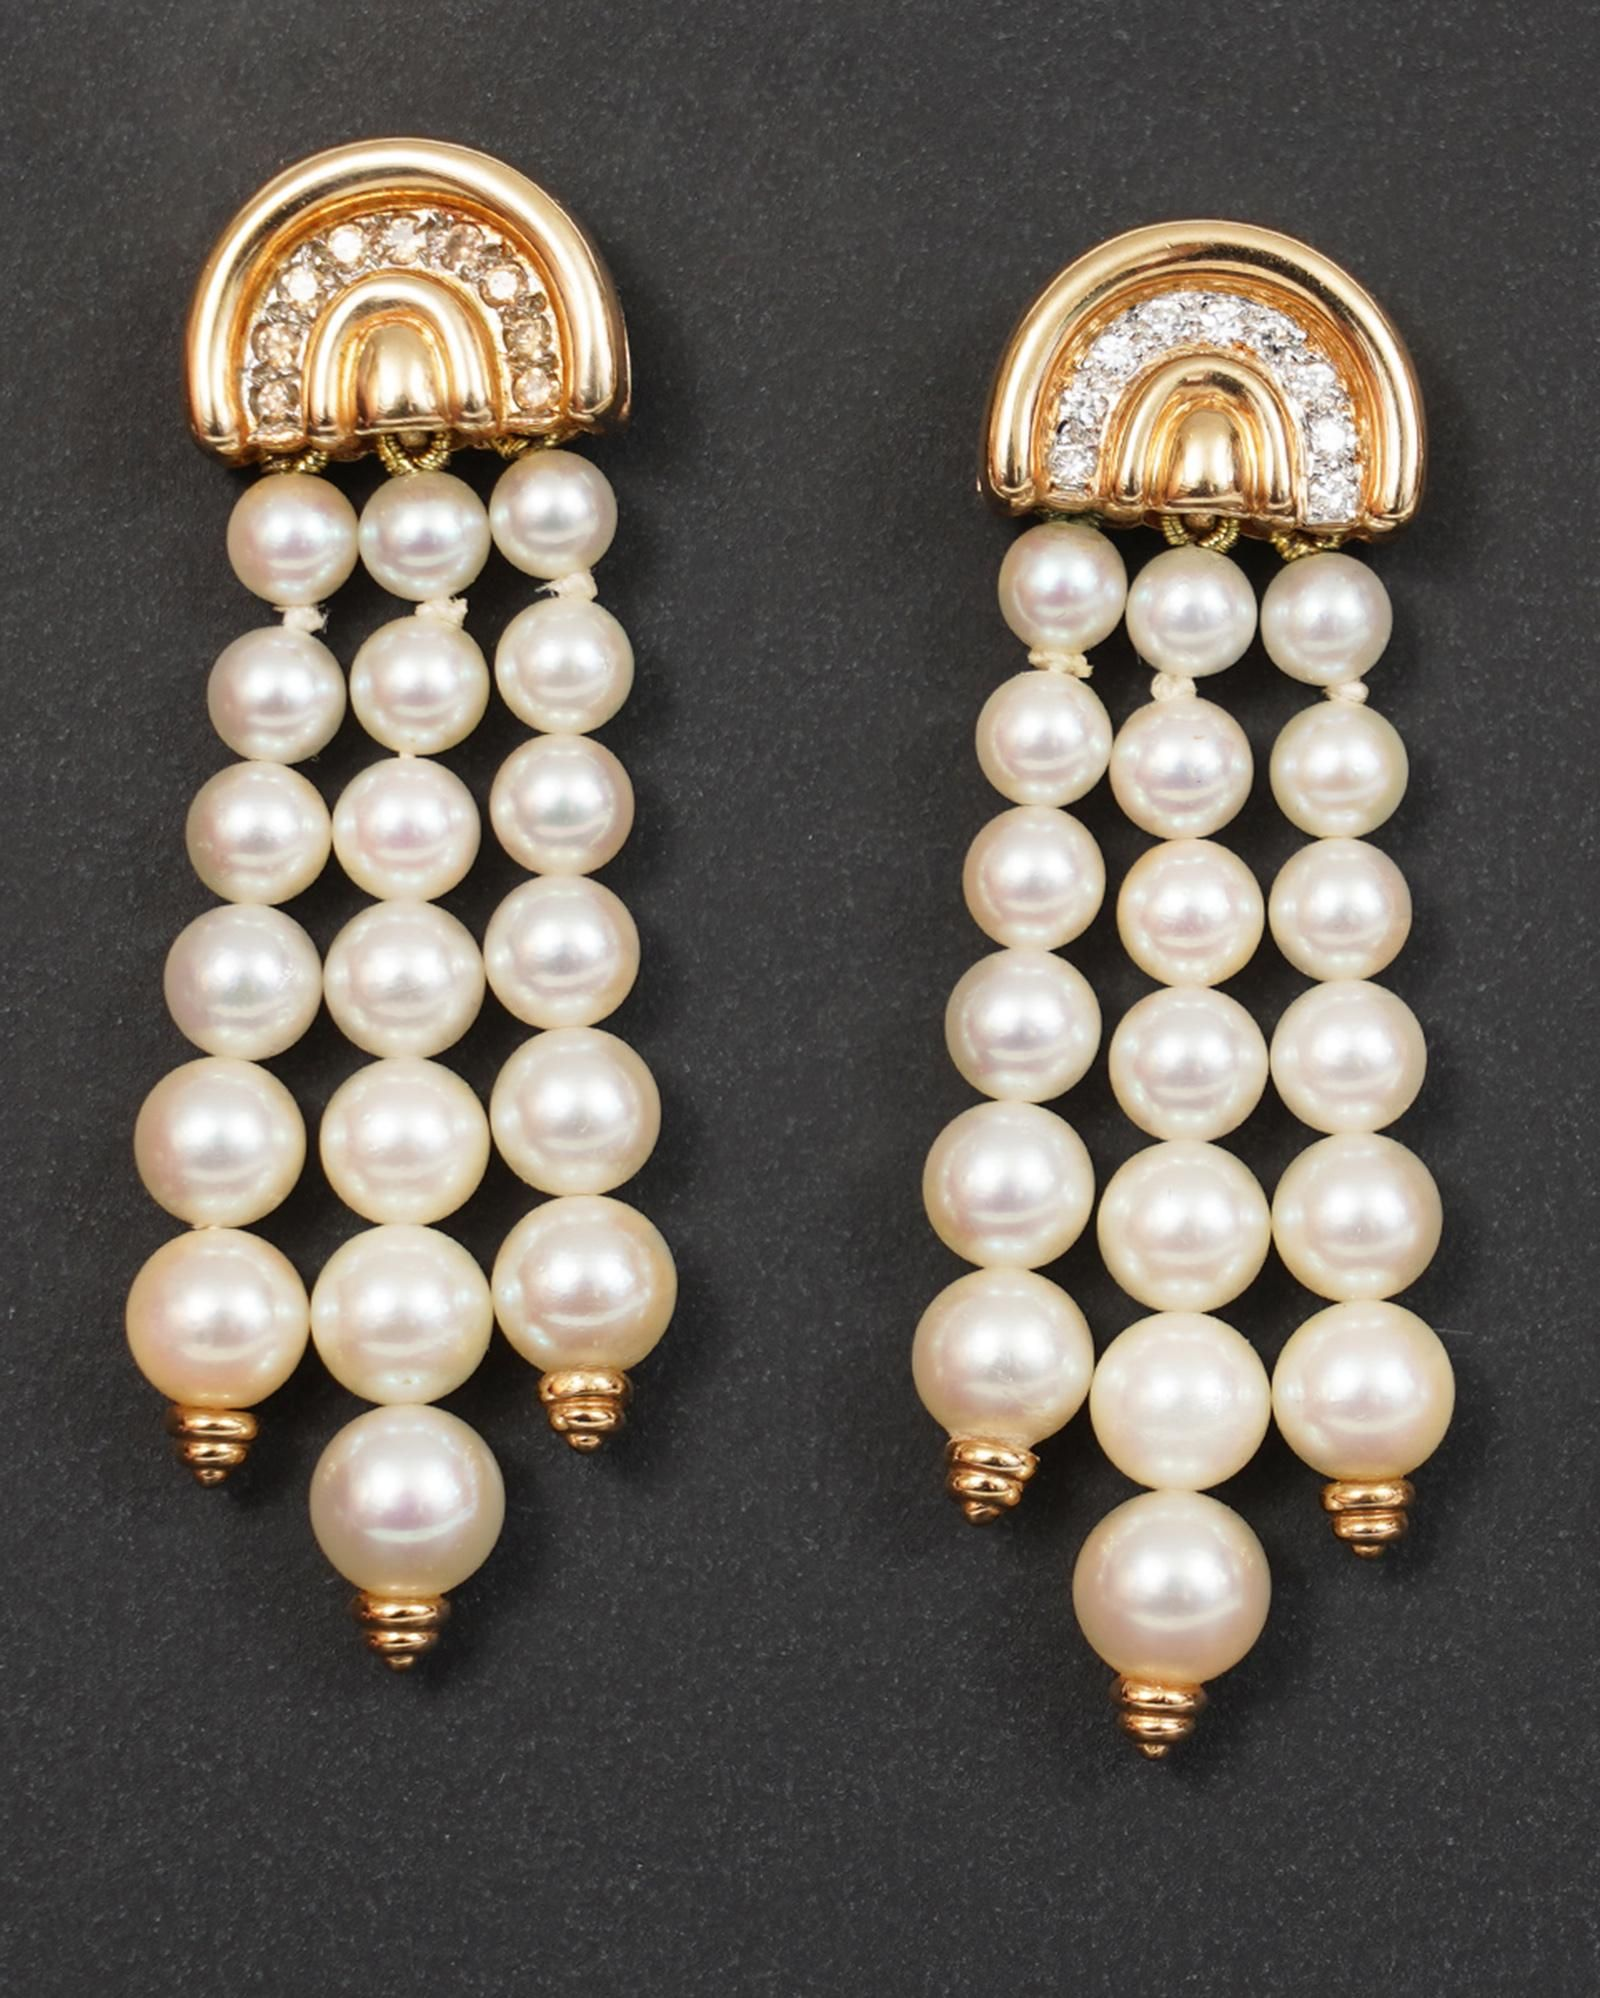 Pair of 14k Gold Diamond & Pearl Drop Earrings